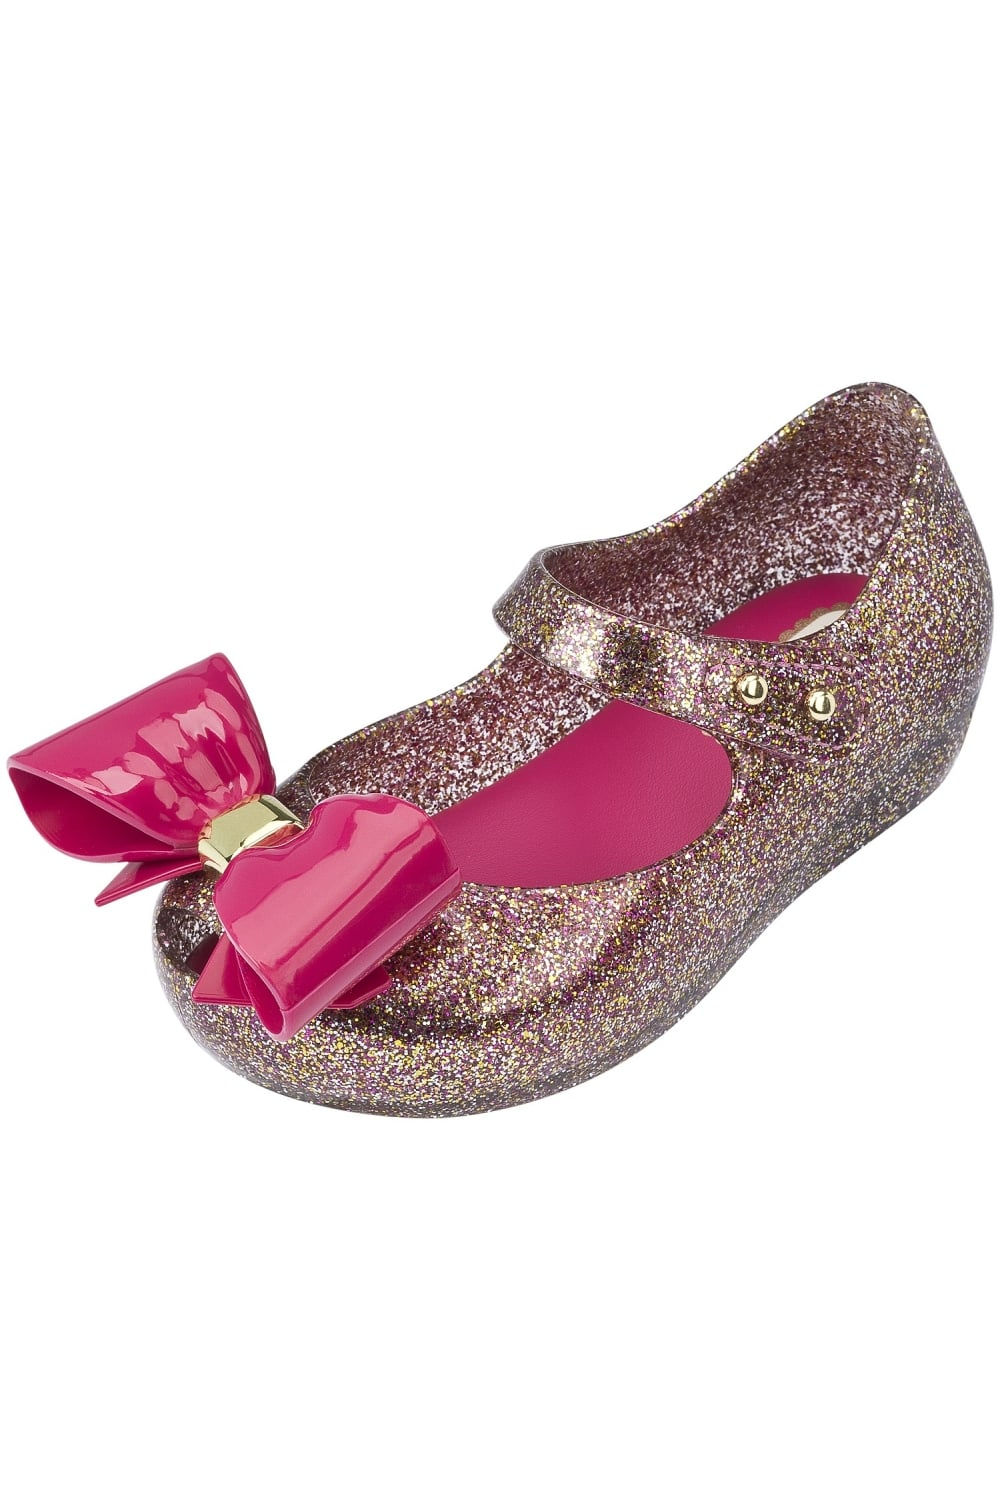 mini ultragirl bow shoes in glitter pink